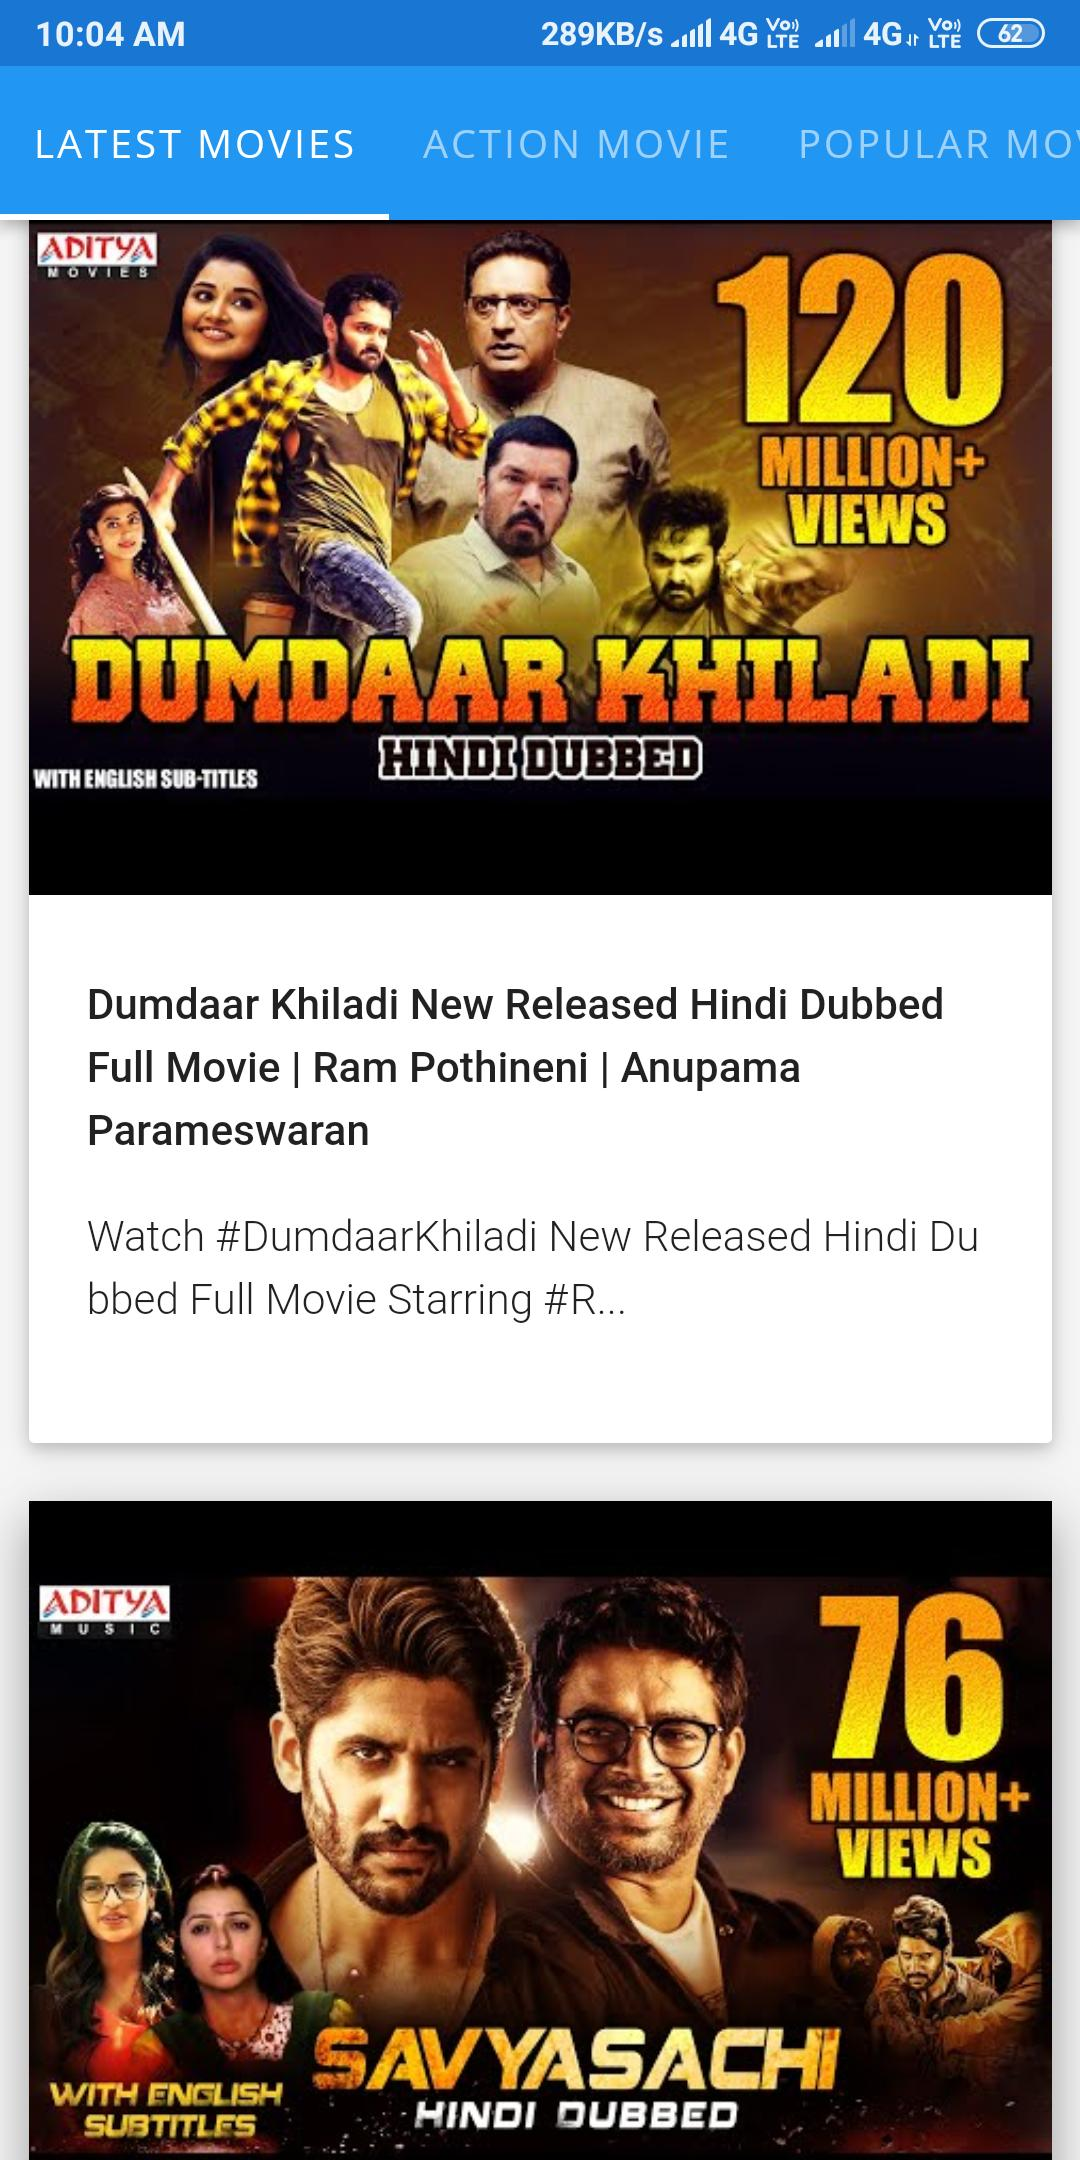 South Hd Hindi dubbed movie for Android - APK Download